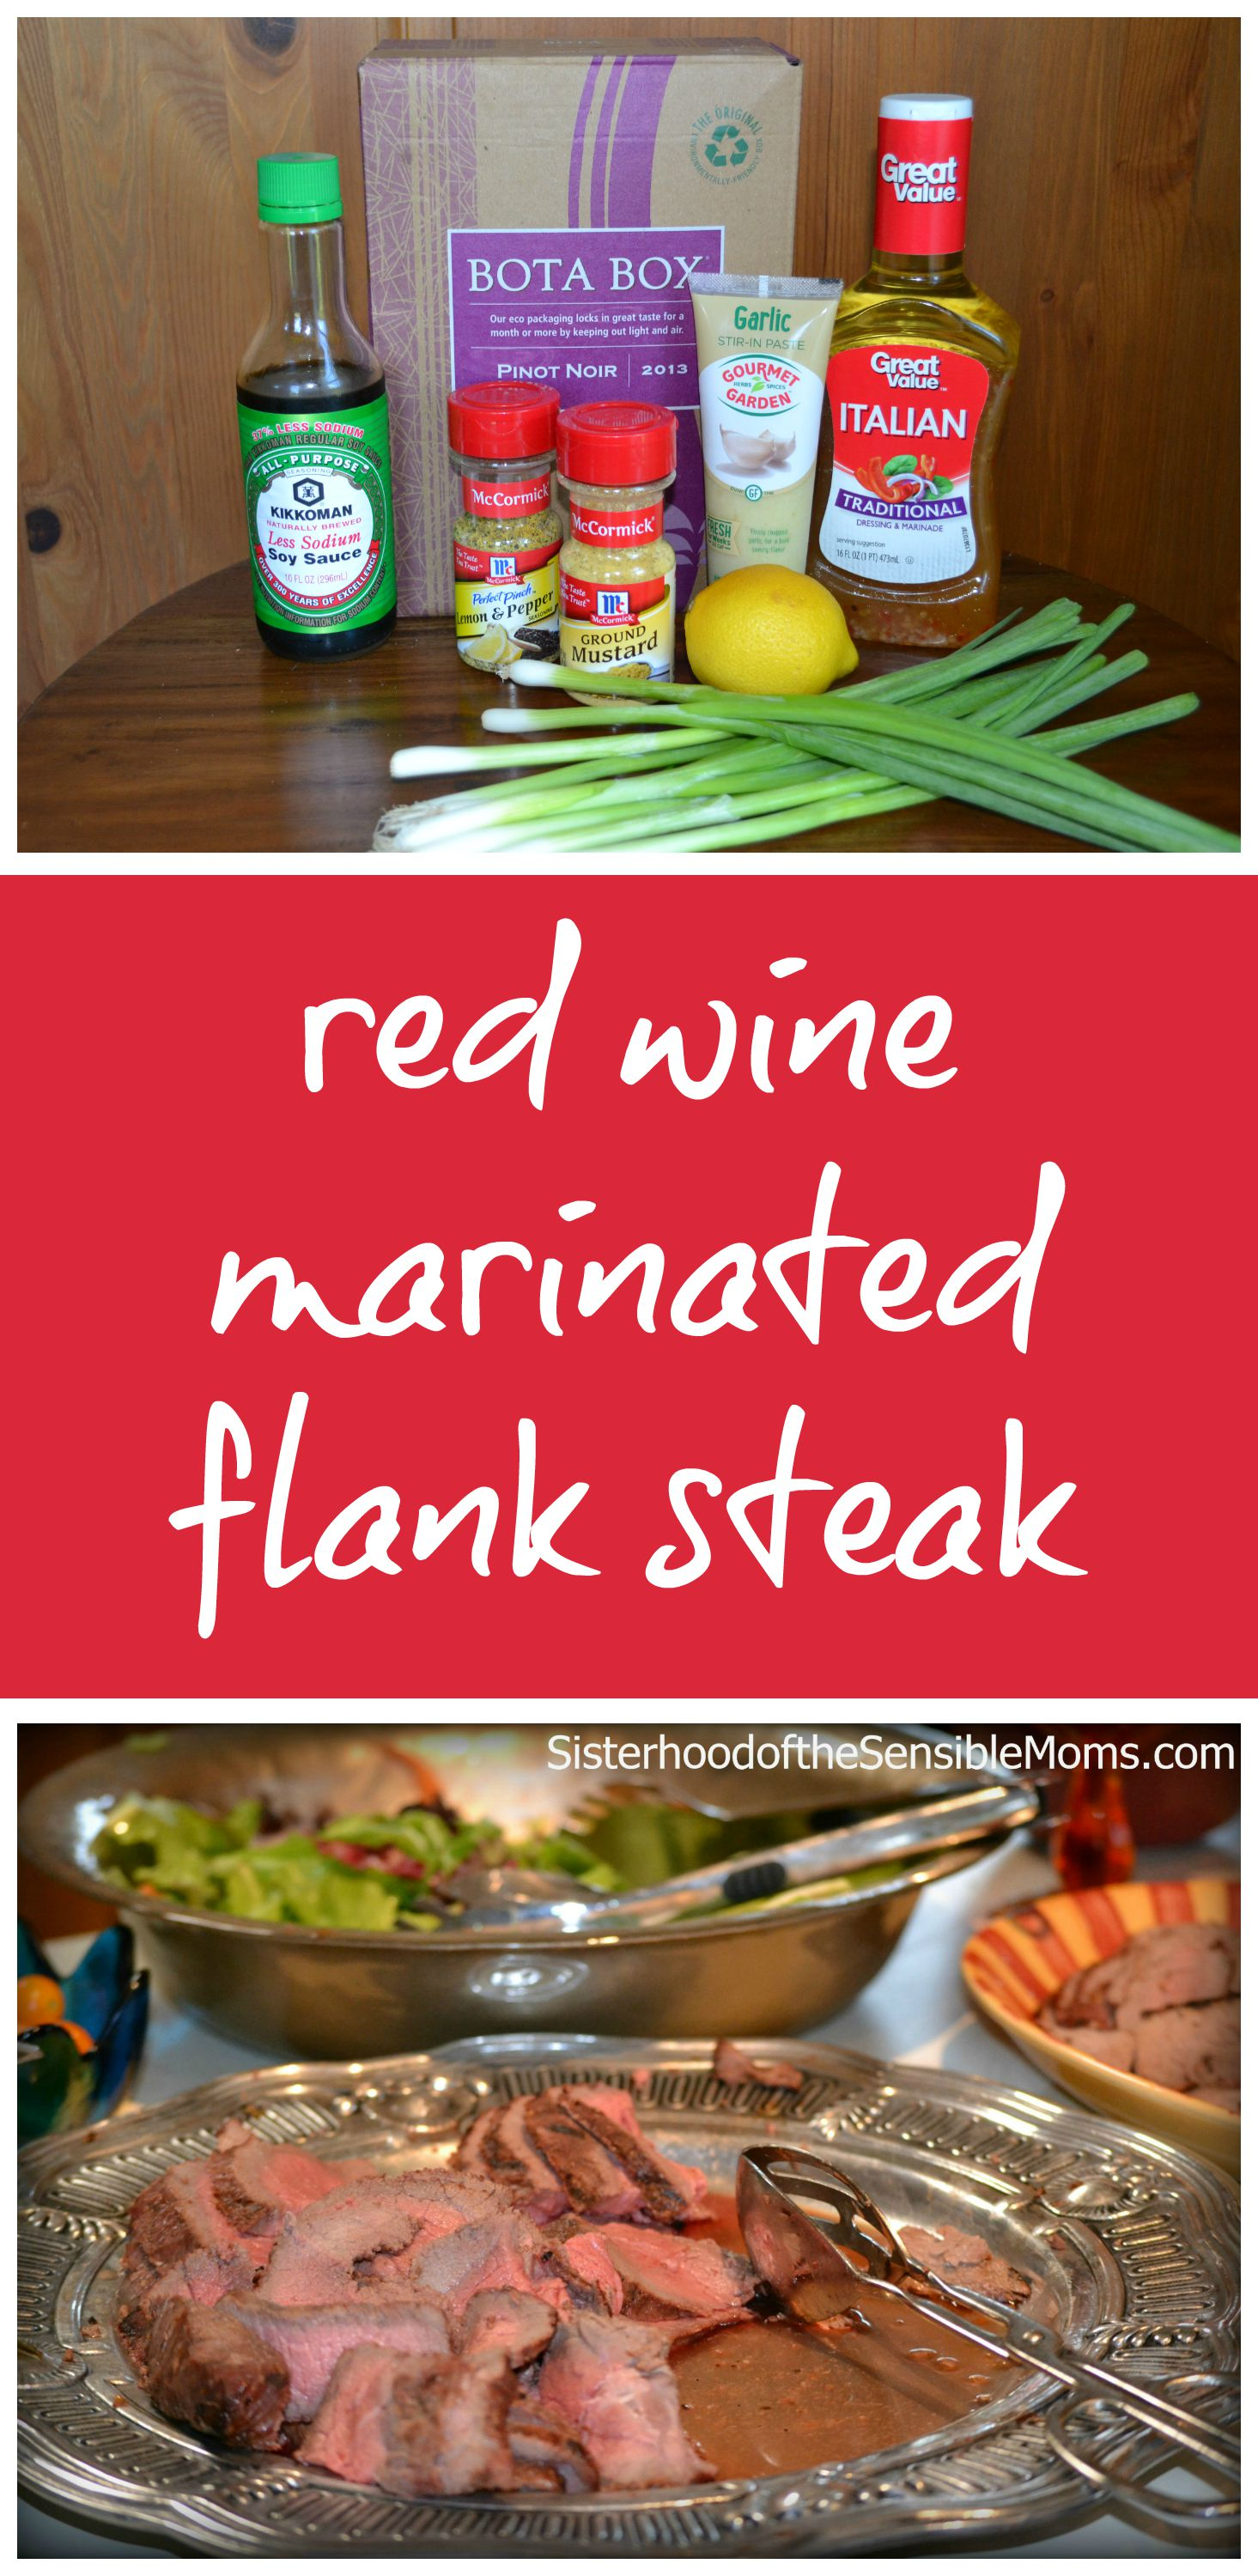 Red Wine Marinated Flank Steak | Whether you call it London broil or flank steak, it can be a delicious cut of meat especially with this marinade to bring out its full flavor and tenderness. An economical and calorie-friendly way to enjoy steak.